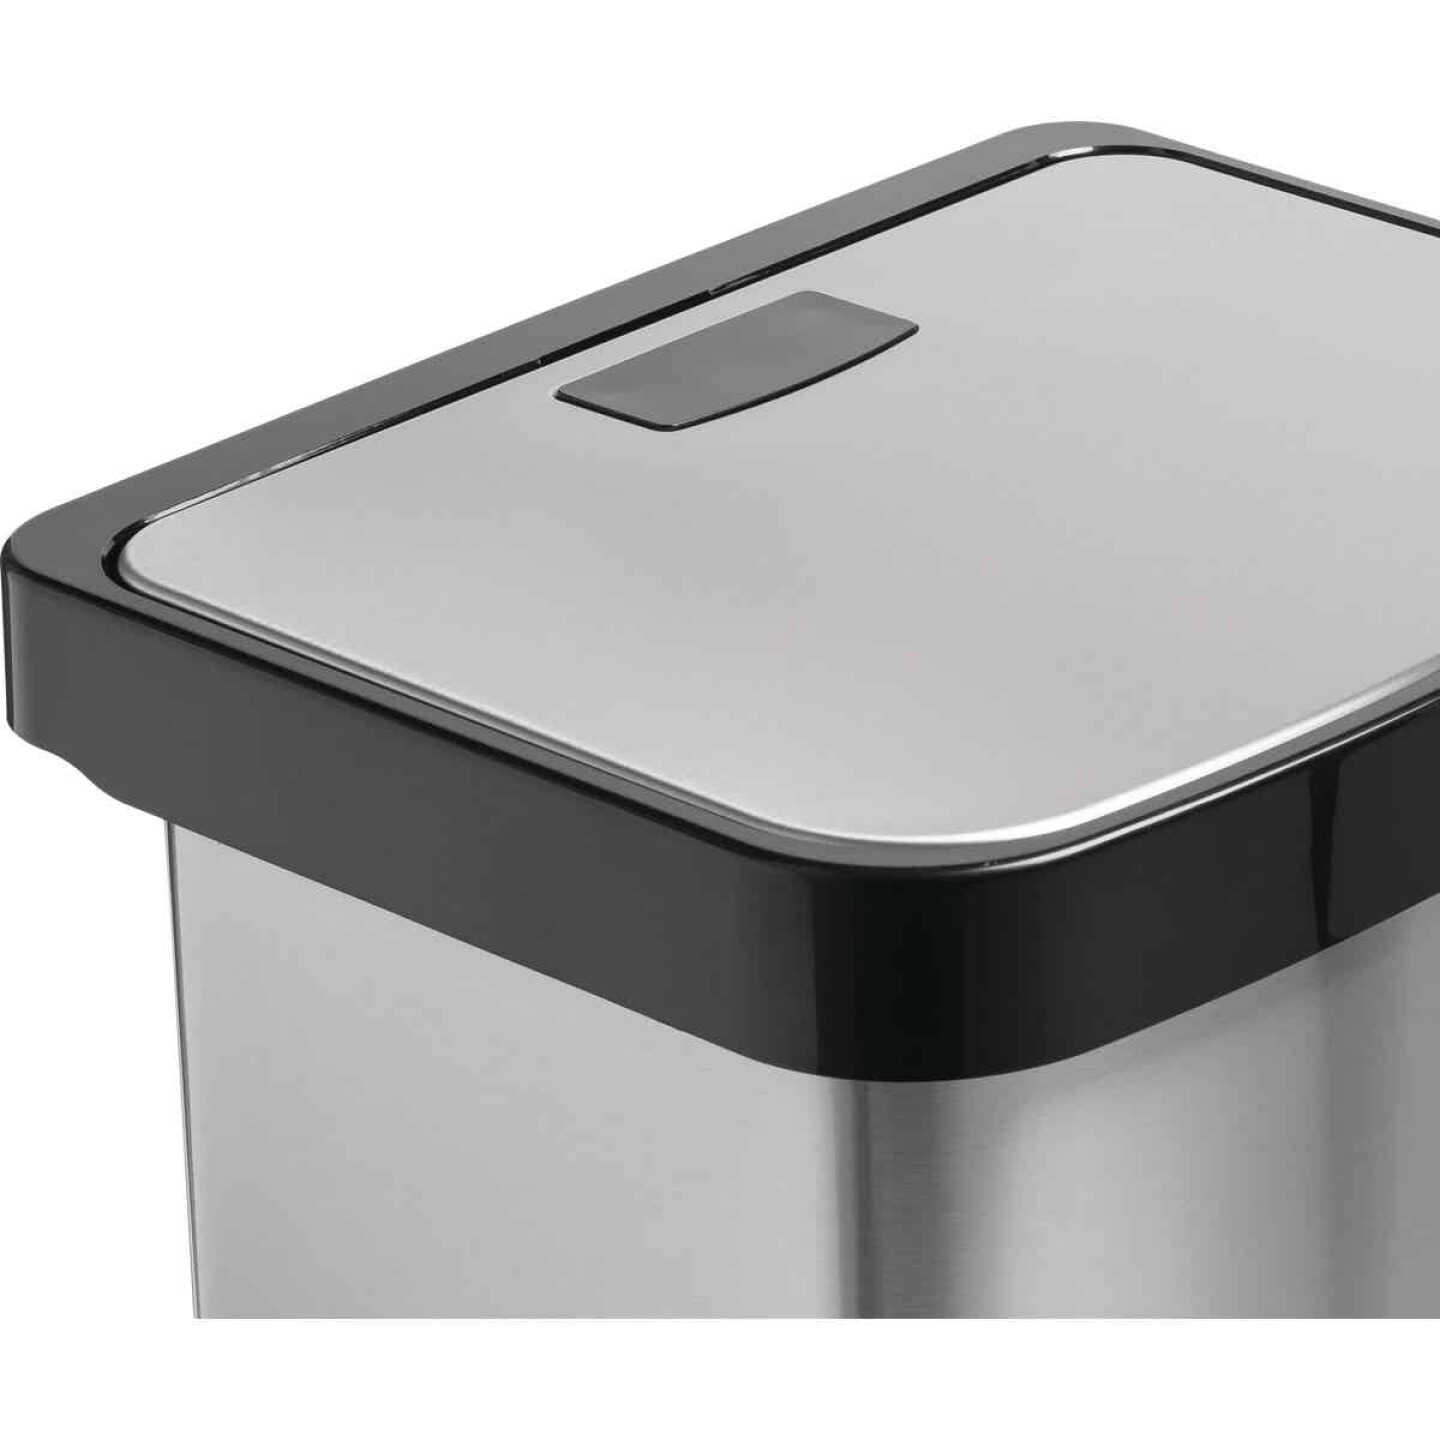 Honey Can Do 50L Stainless Steel Wastebasket Image 3